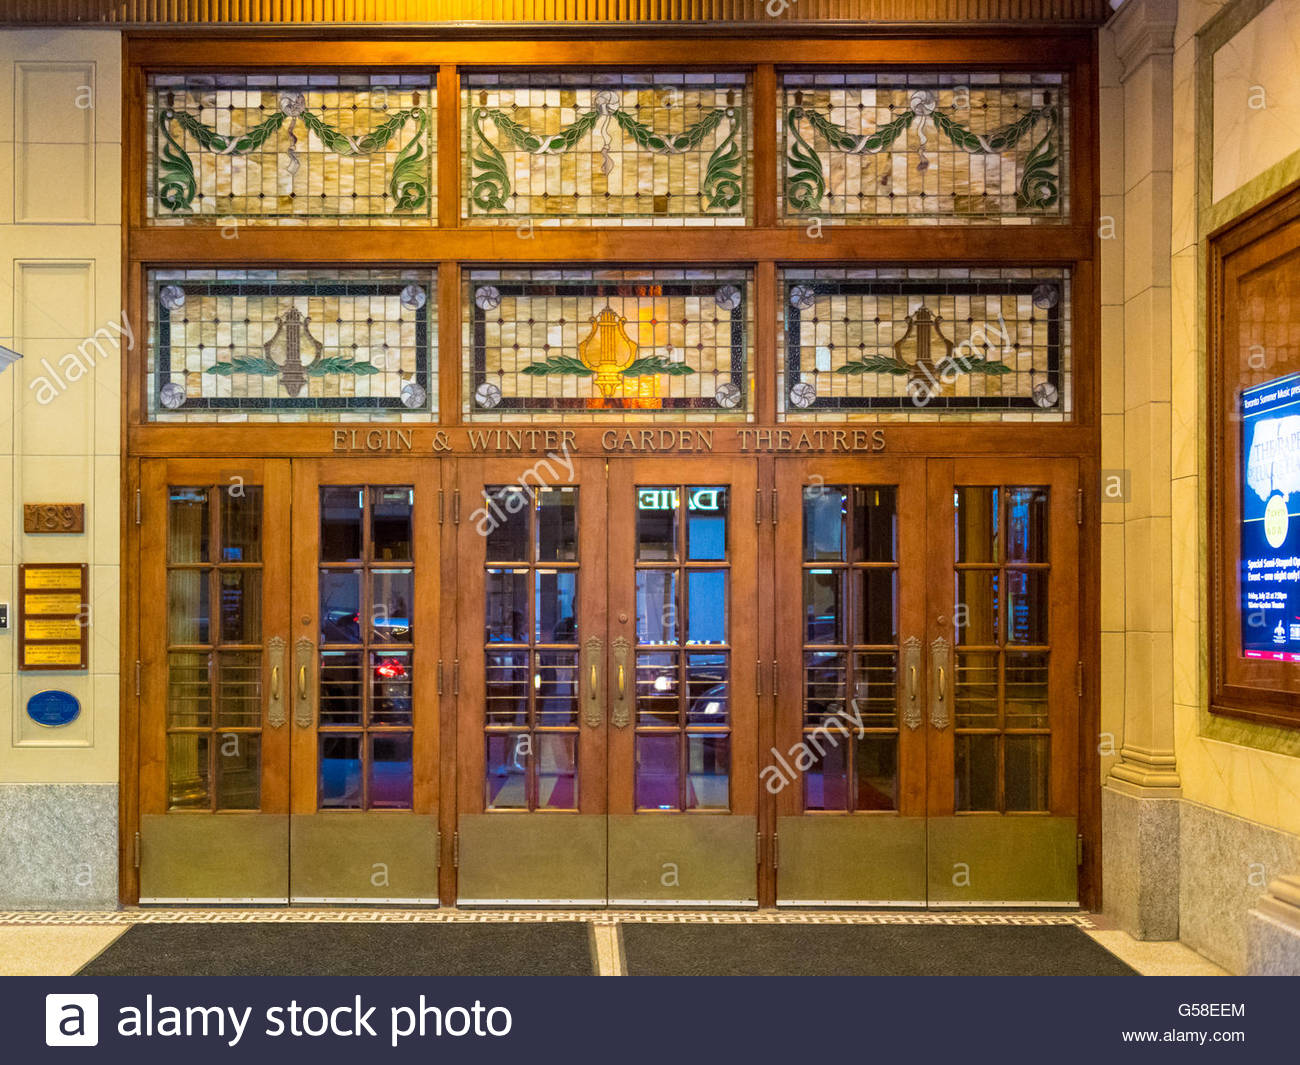 Elgin and Winter Garden details. They are the last surviving Edwardian stacked theatres in the world.   The Elgin Stock Photo